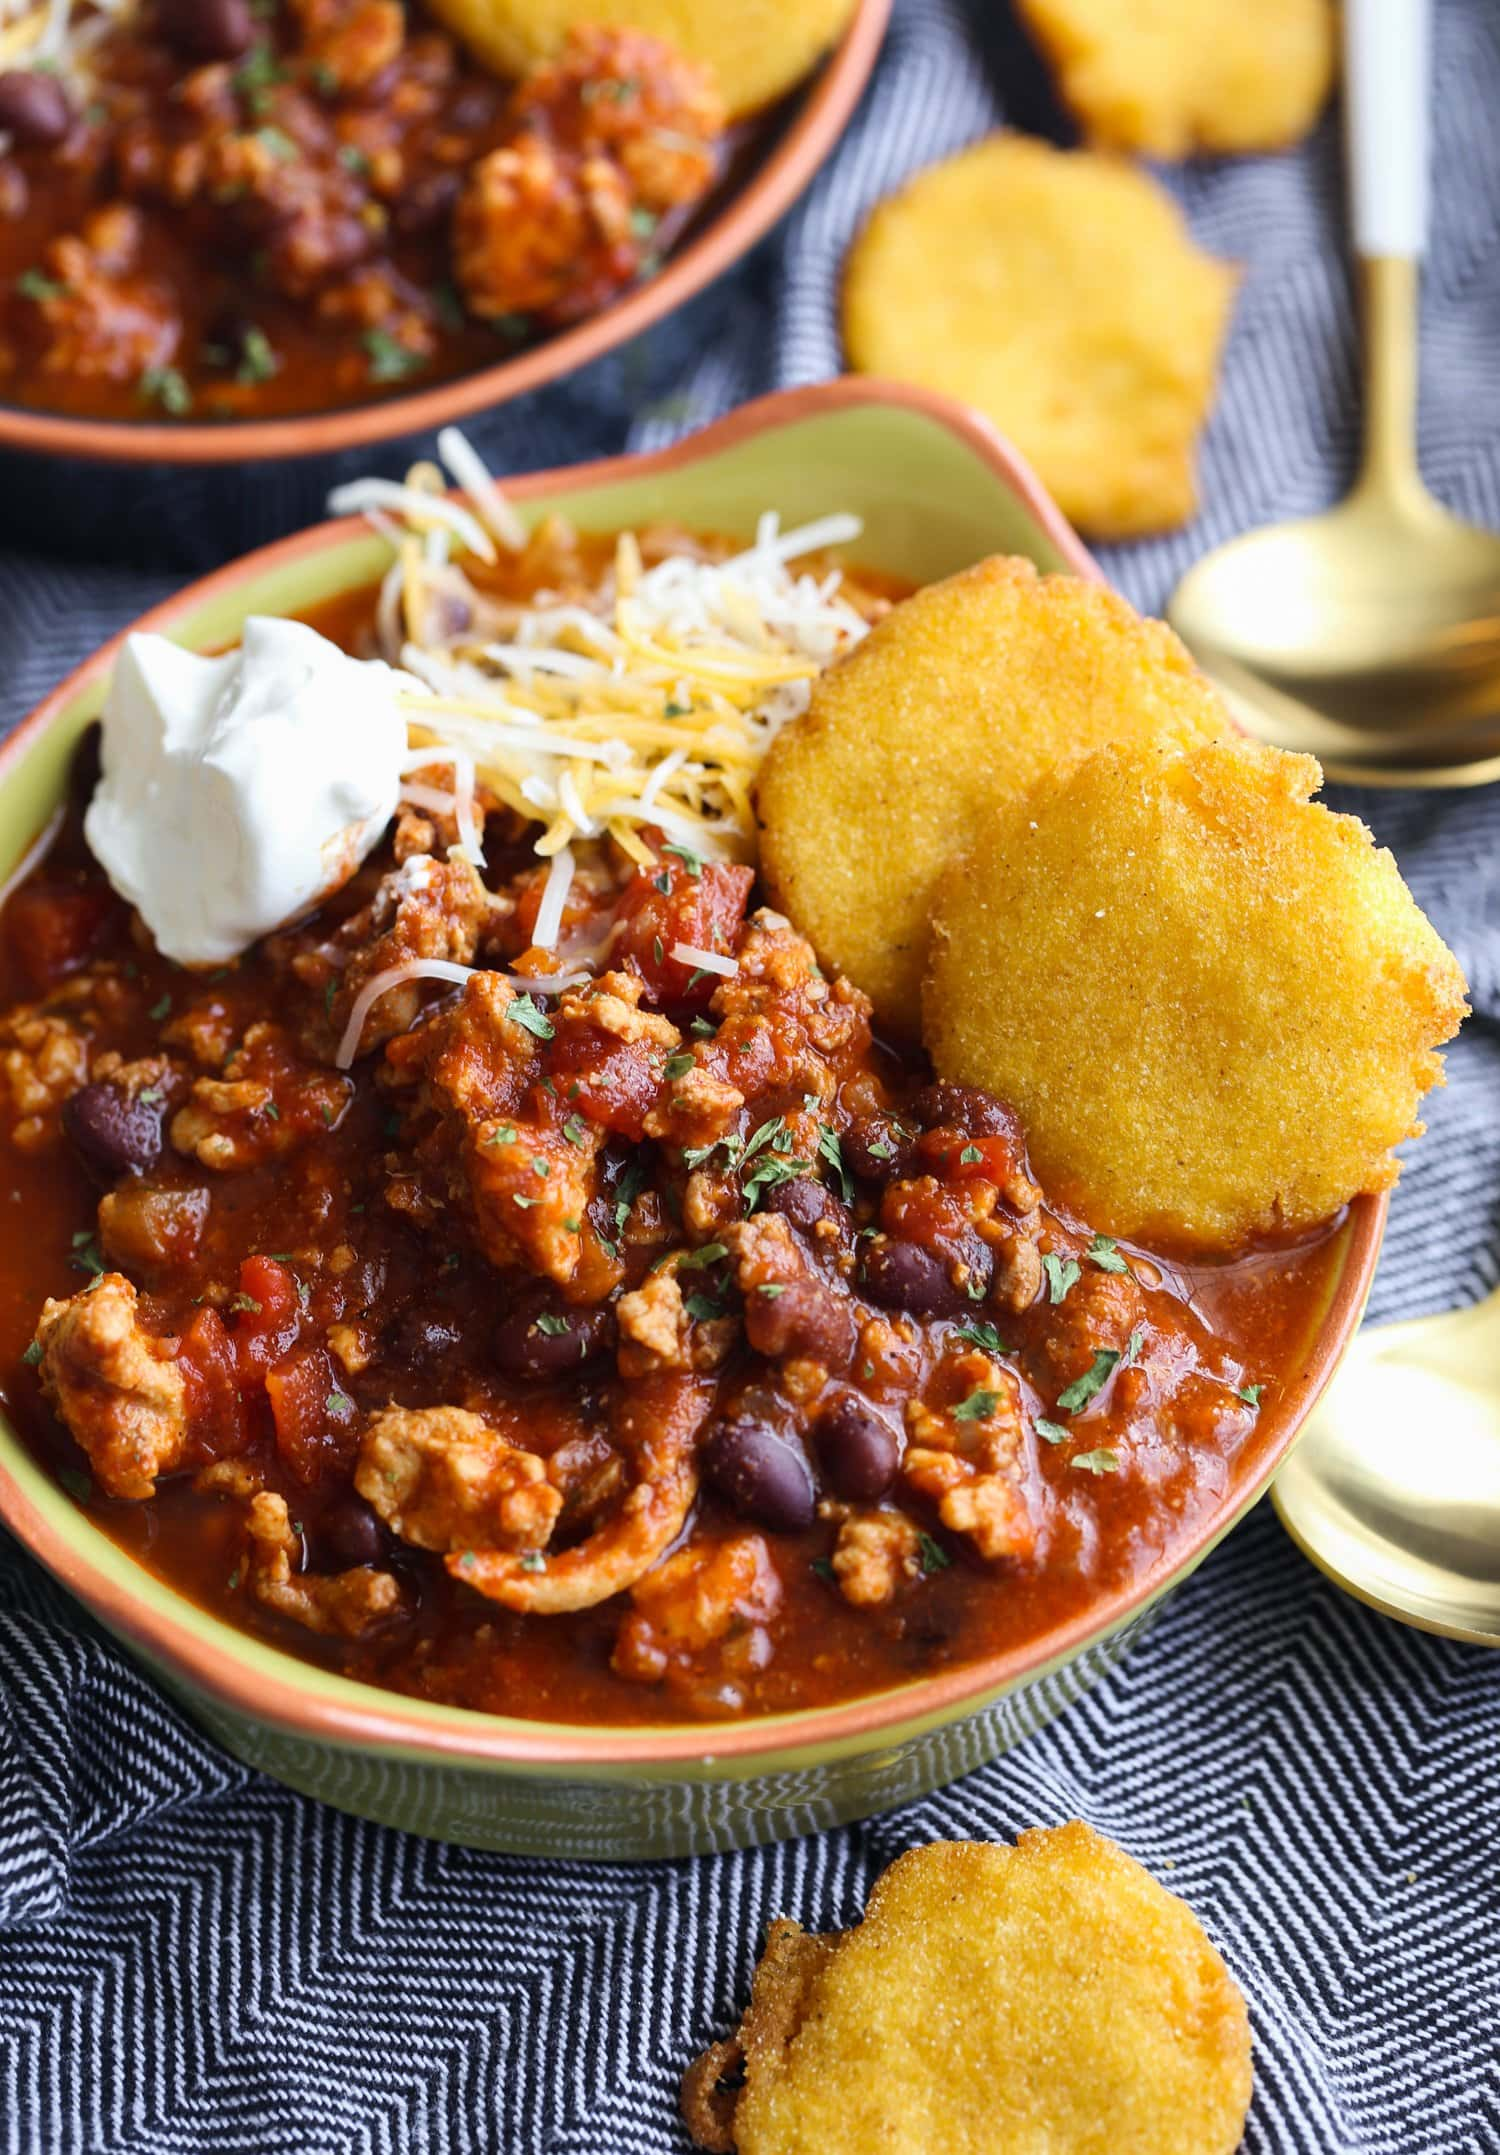 Turkey chili with sour cream and cheese.